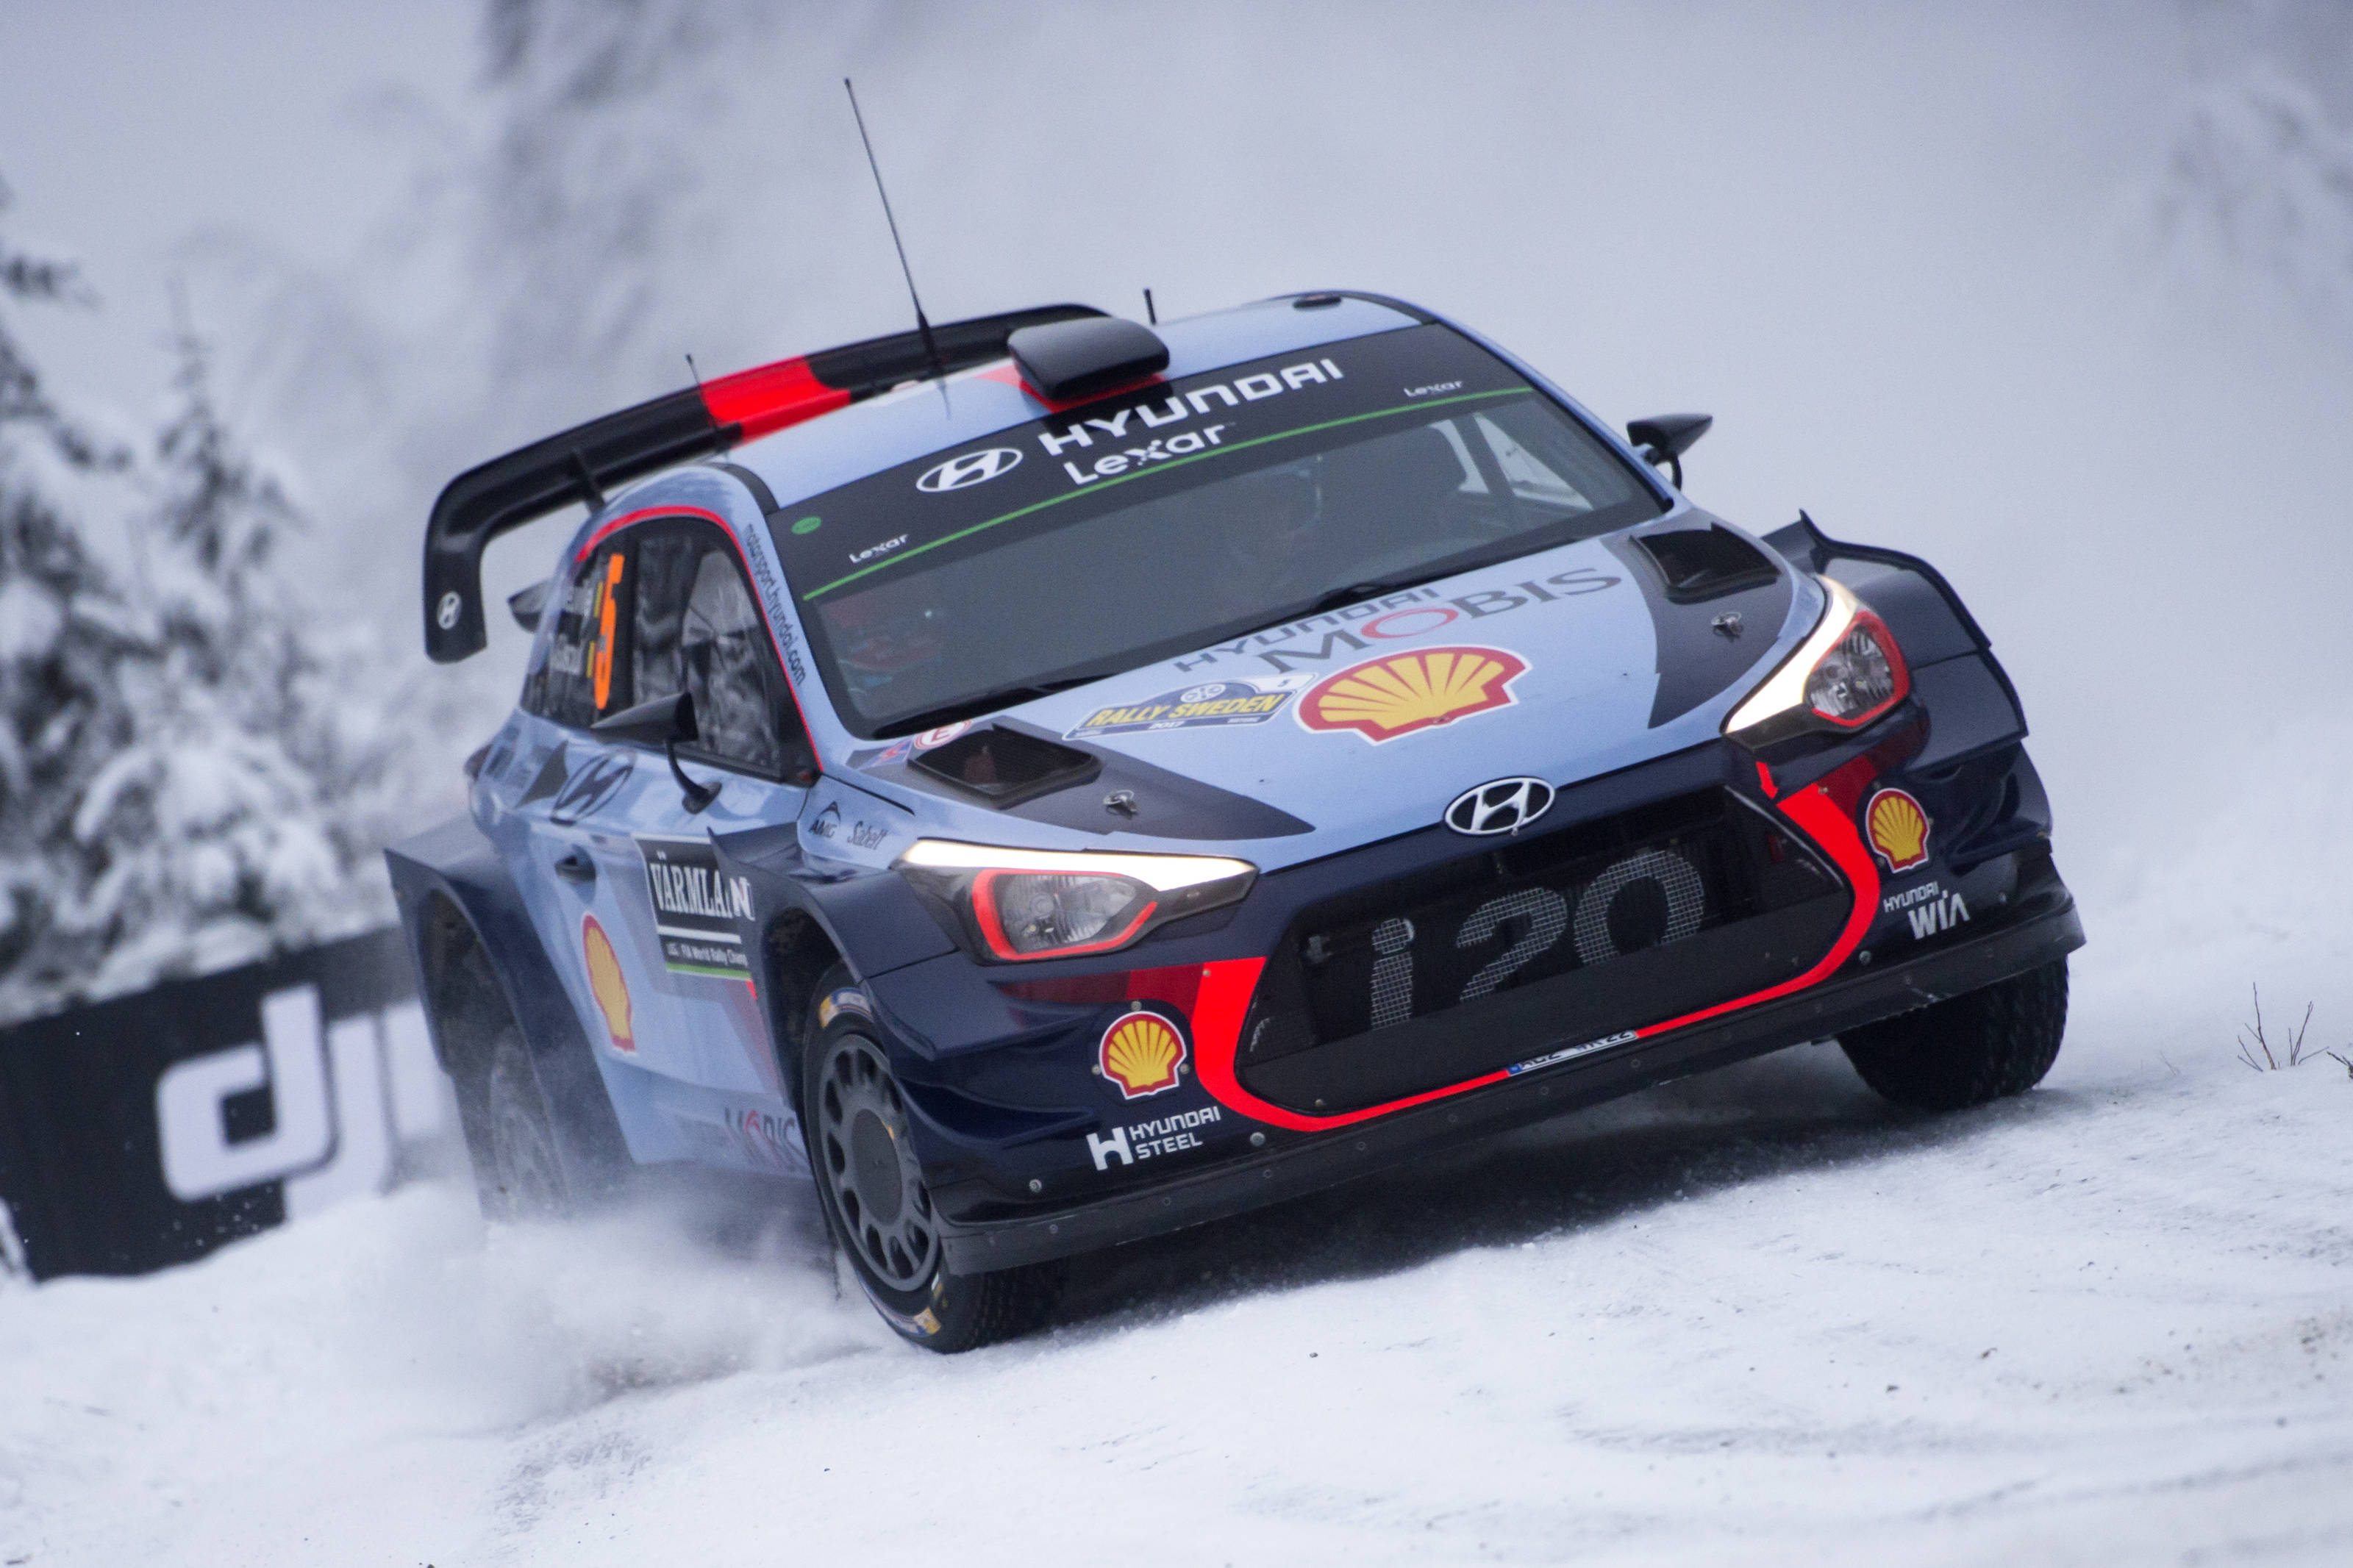 Motorsports WRC Rally Sweden Neuville takes lead after late